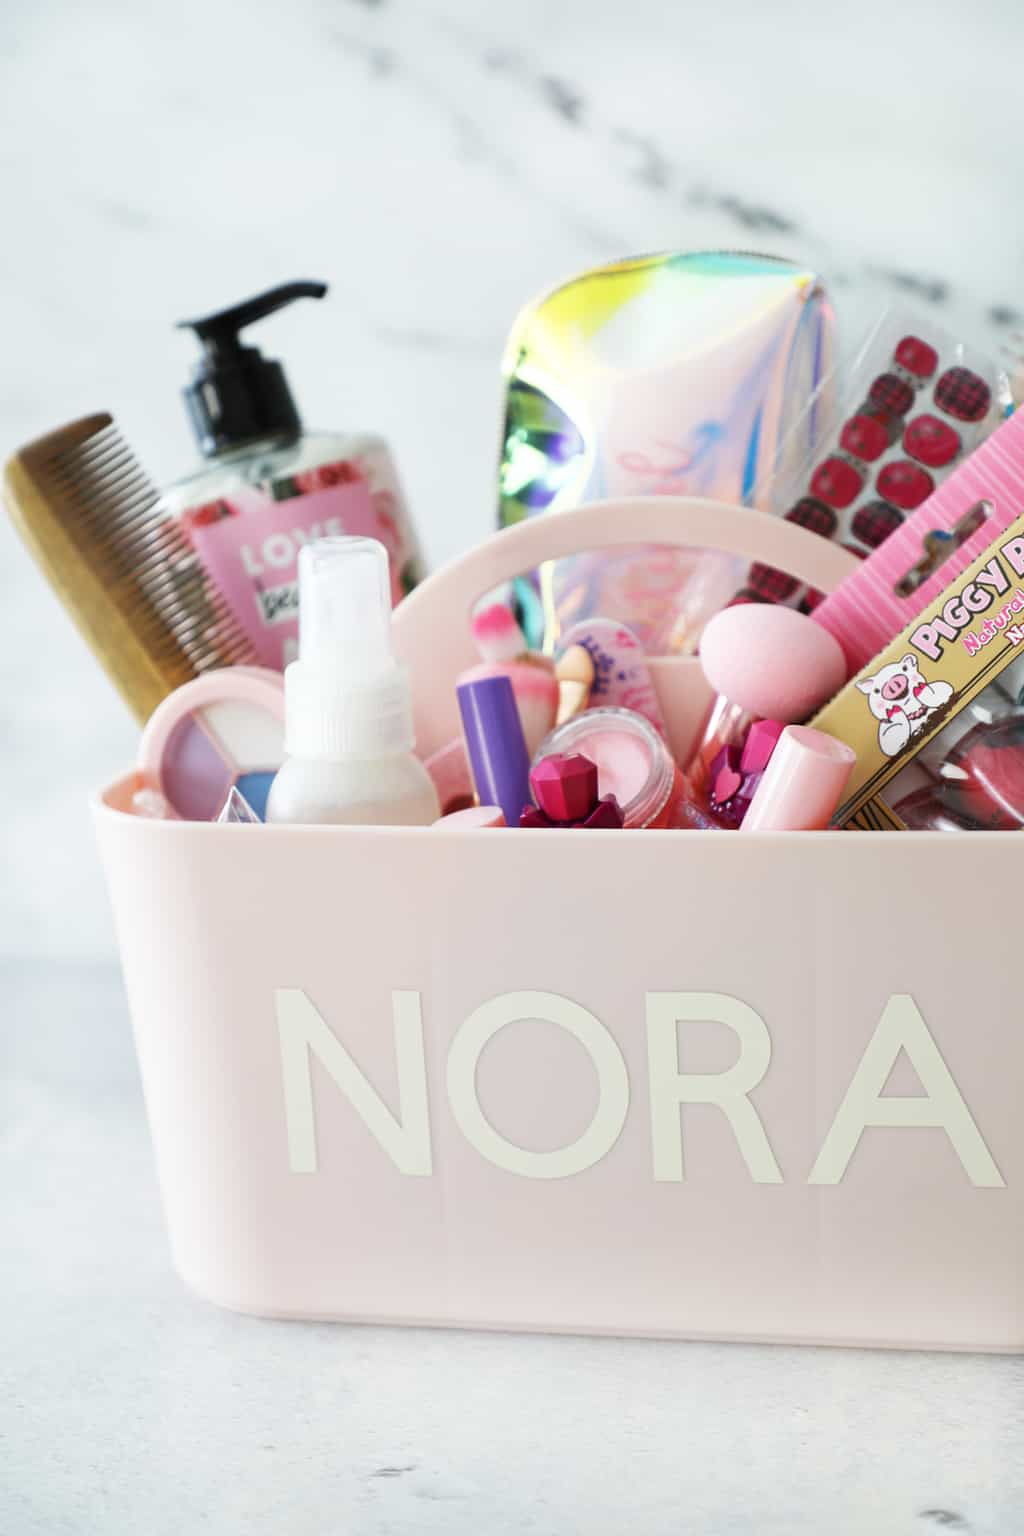 pink makeup caddy with the name Nora on it